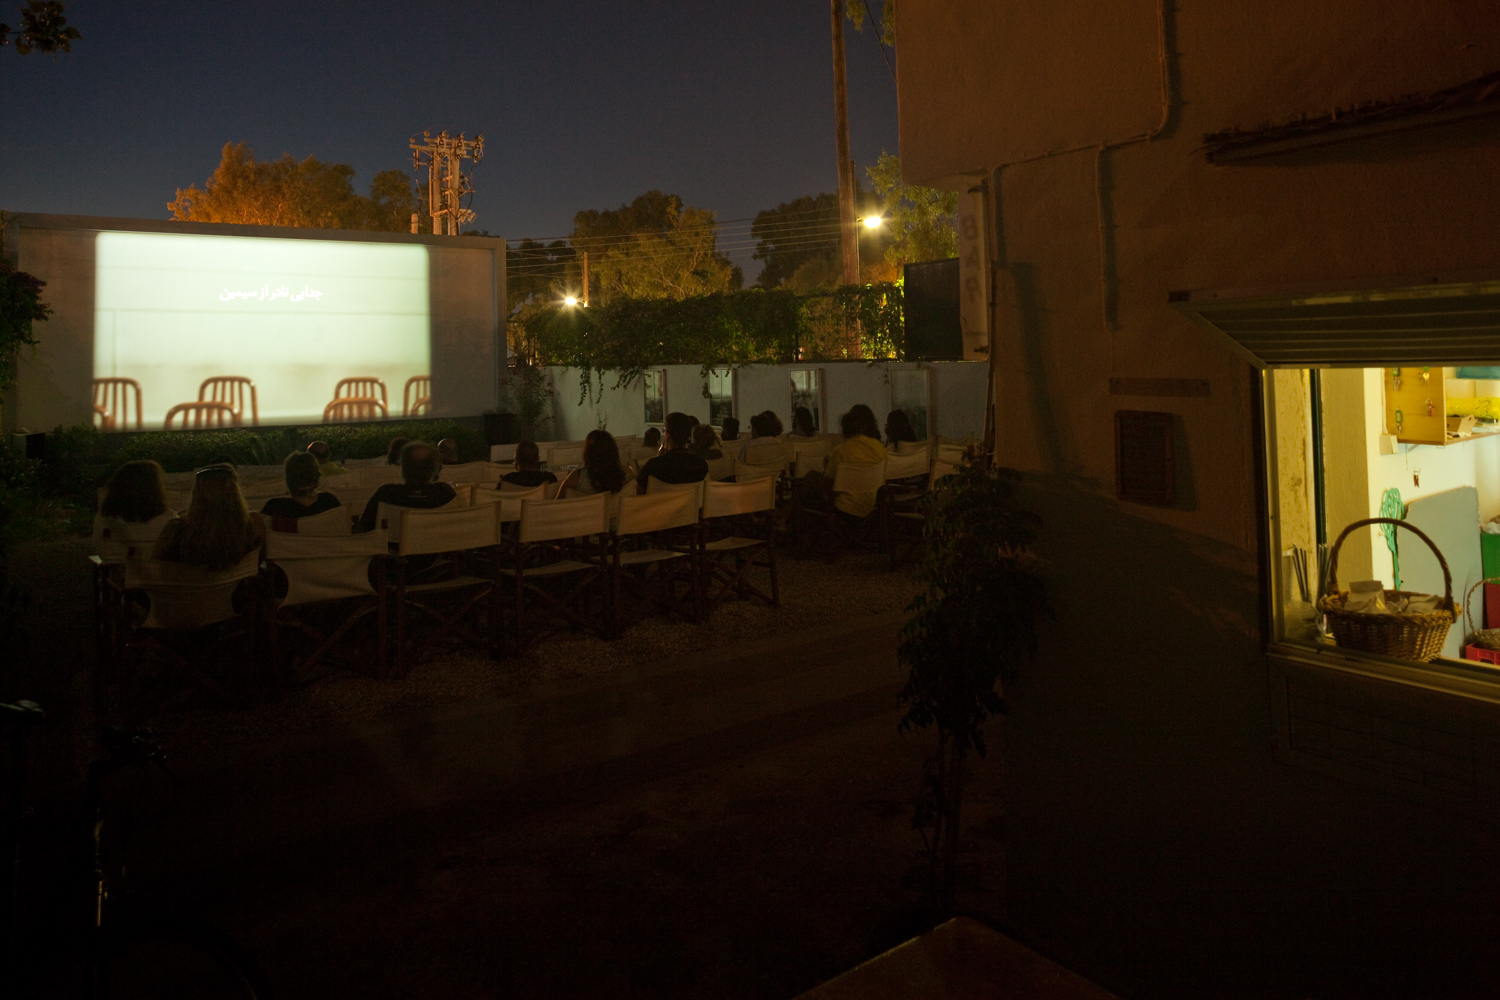 Outdoor cinema near the waterfront of Eleusis.